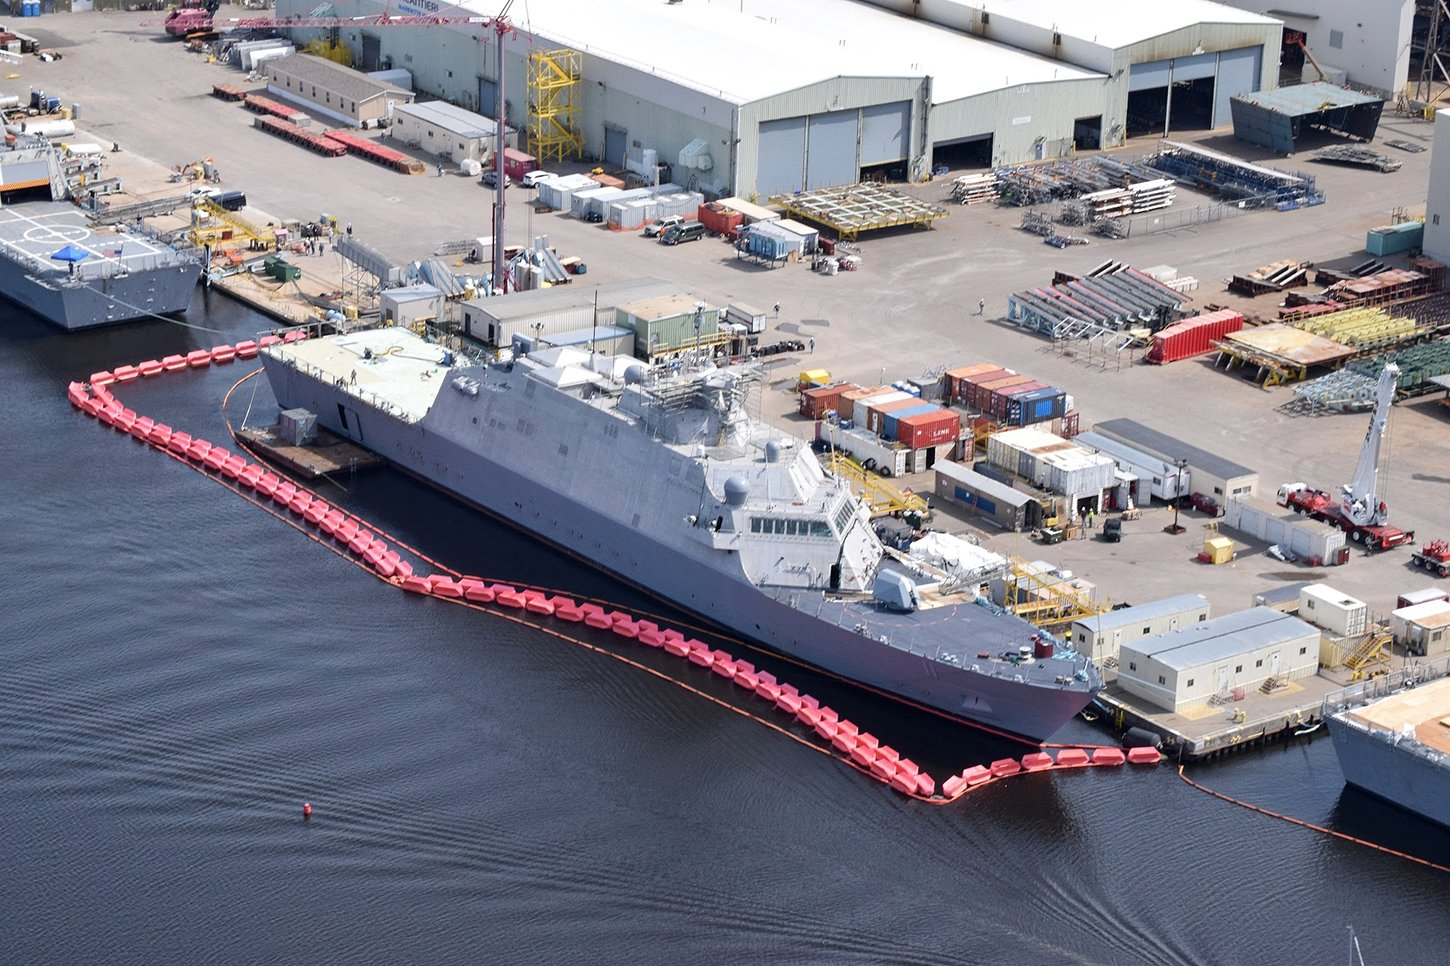 The USS Sioux City will be the first warship commissioned in Annapolis.